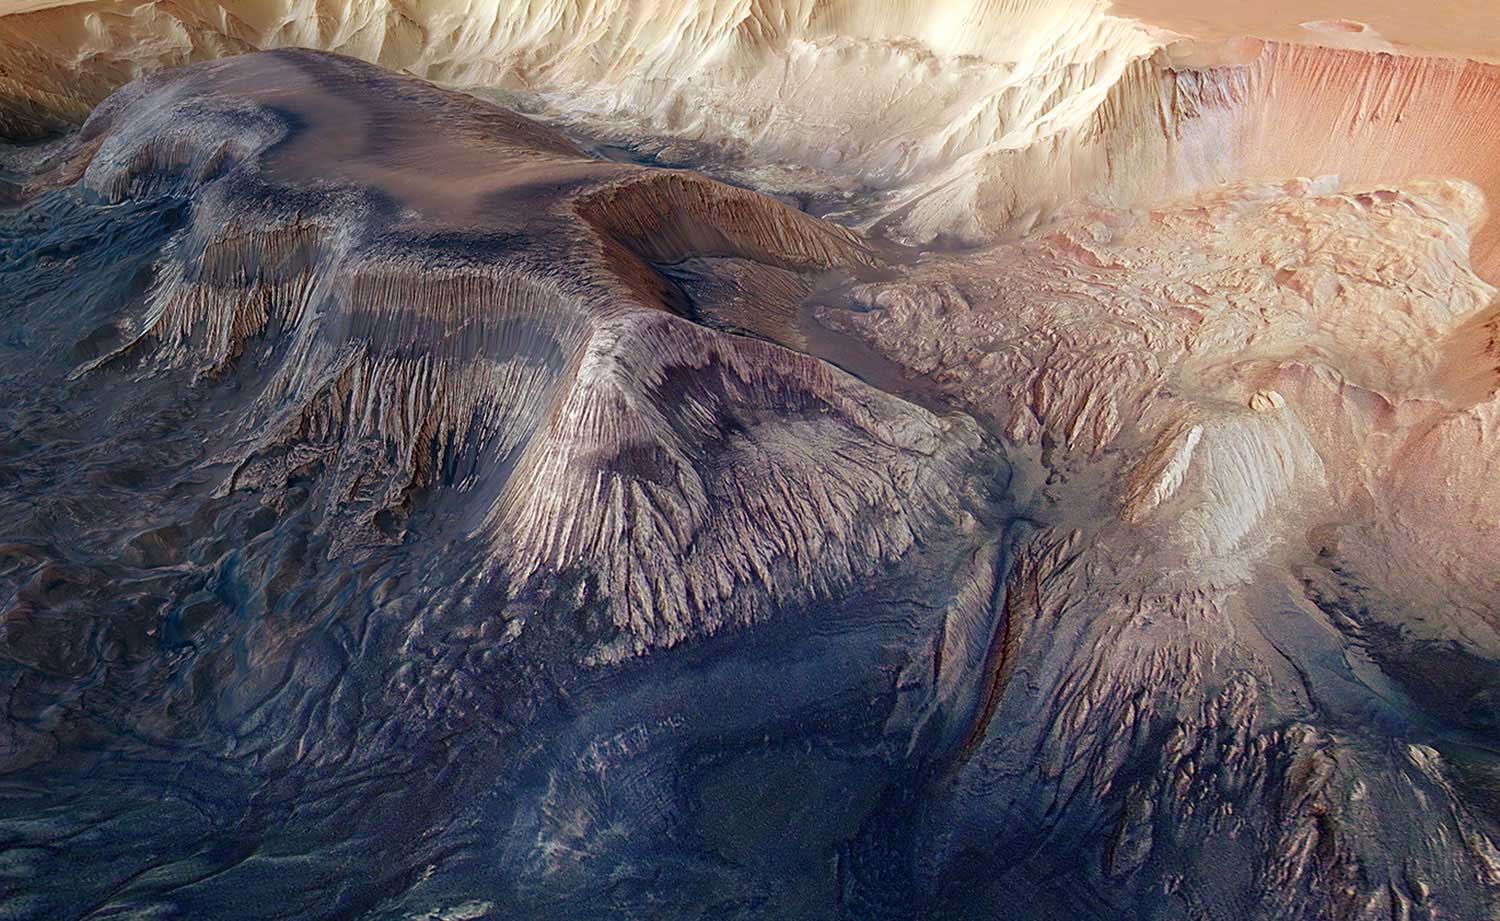 A flat-topped mesa is located in the center of Hebes Chasma on Mars and rises to a similar height as the surrounding plains. Exposed within the walls of the mesa are layers of sediments deposited by wind and water. Numerous grooves are etched into the mountain, suggesting the material is weak and easily eroded.